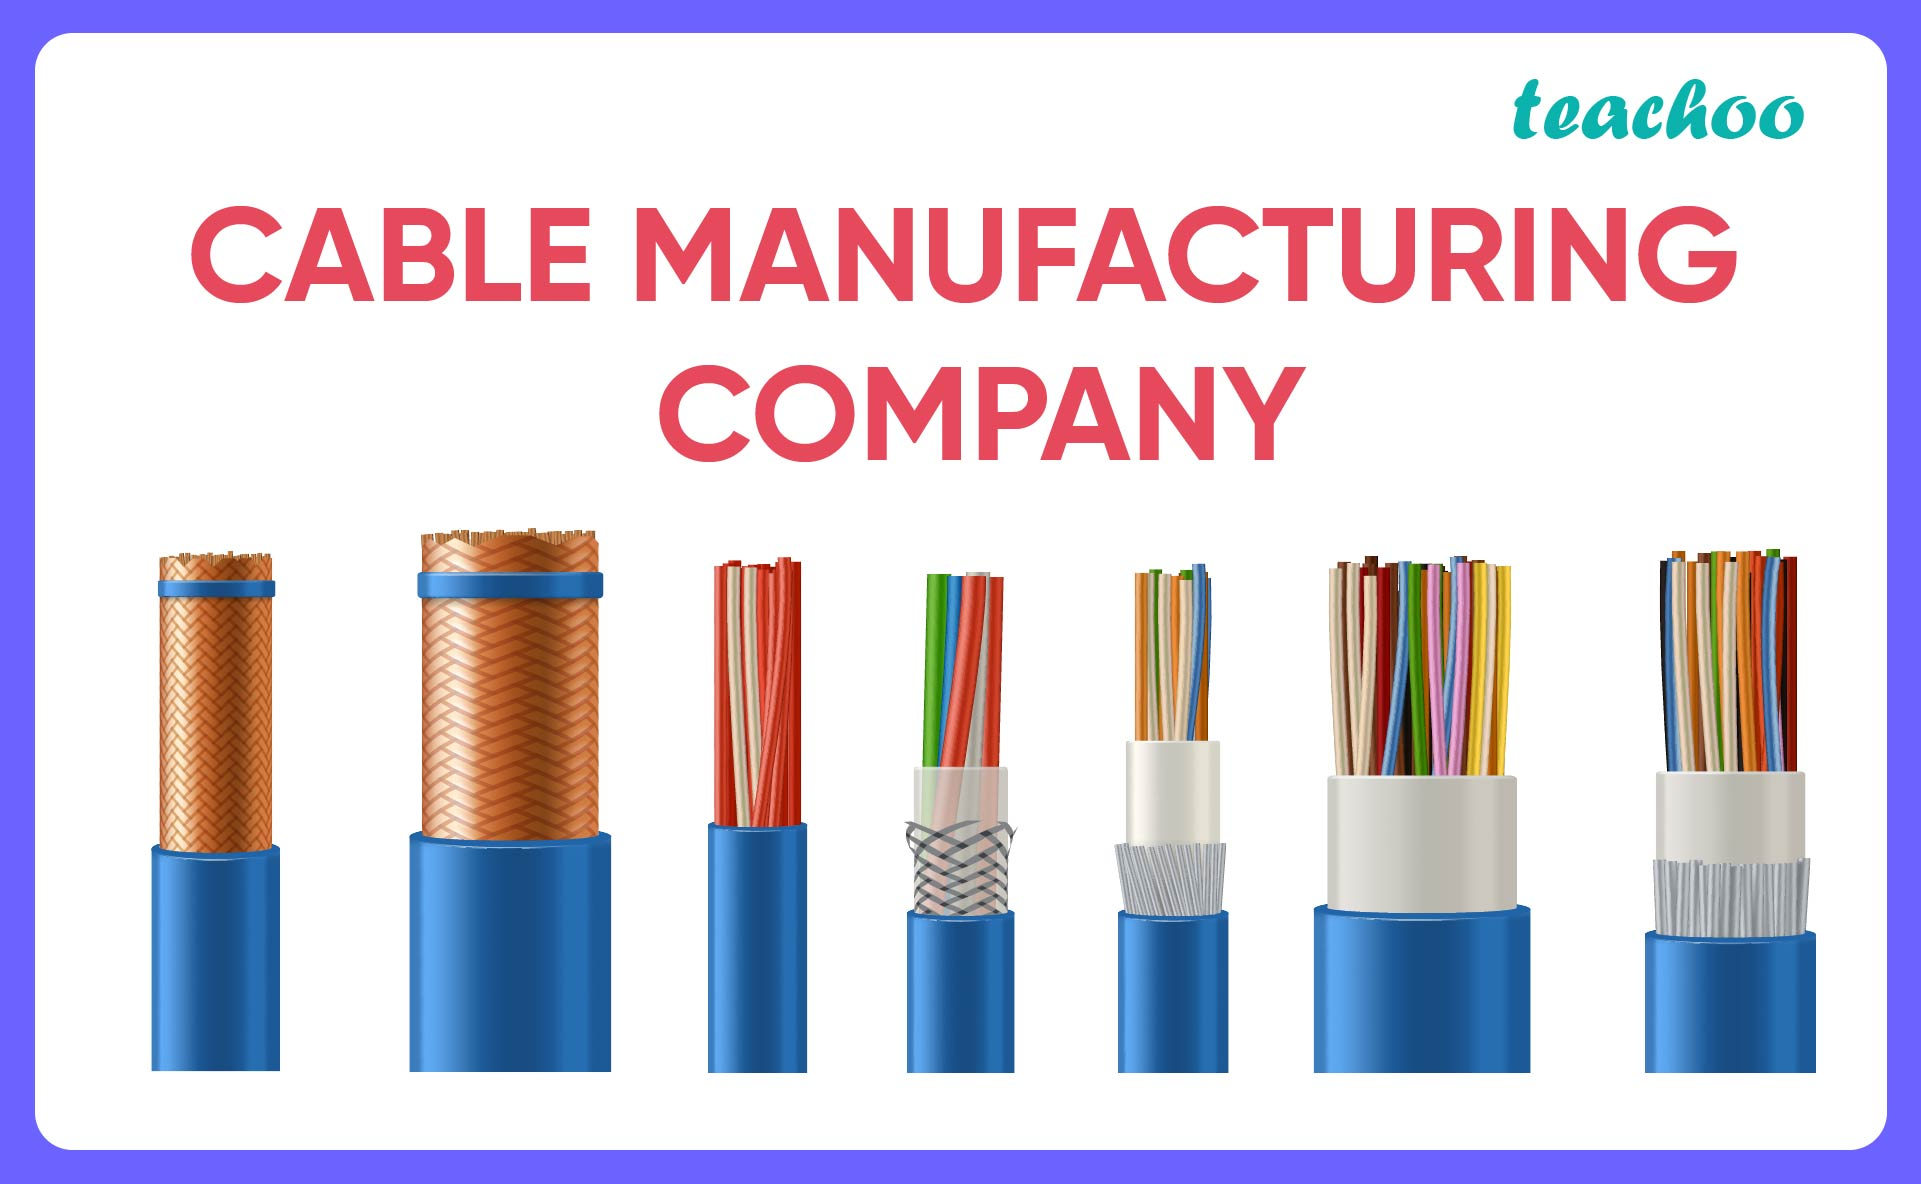 Cable Manufacturing company-01.jpg